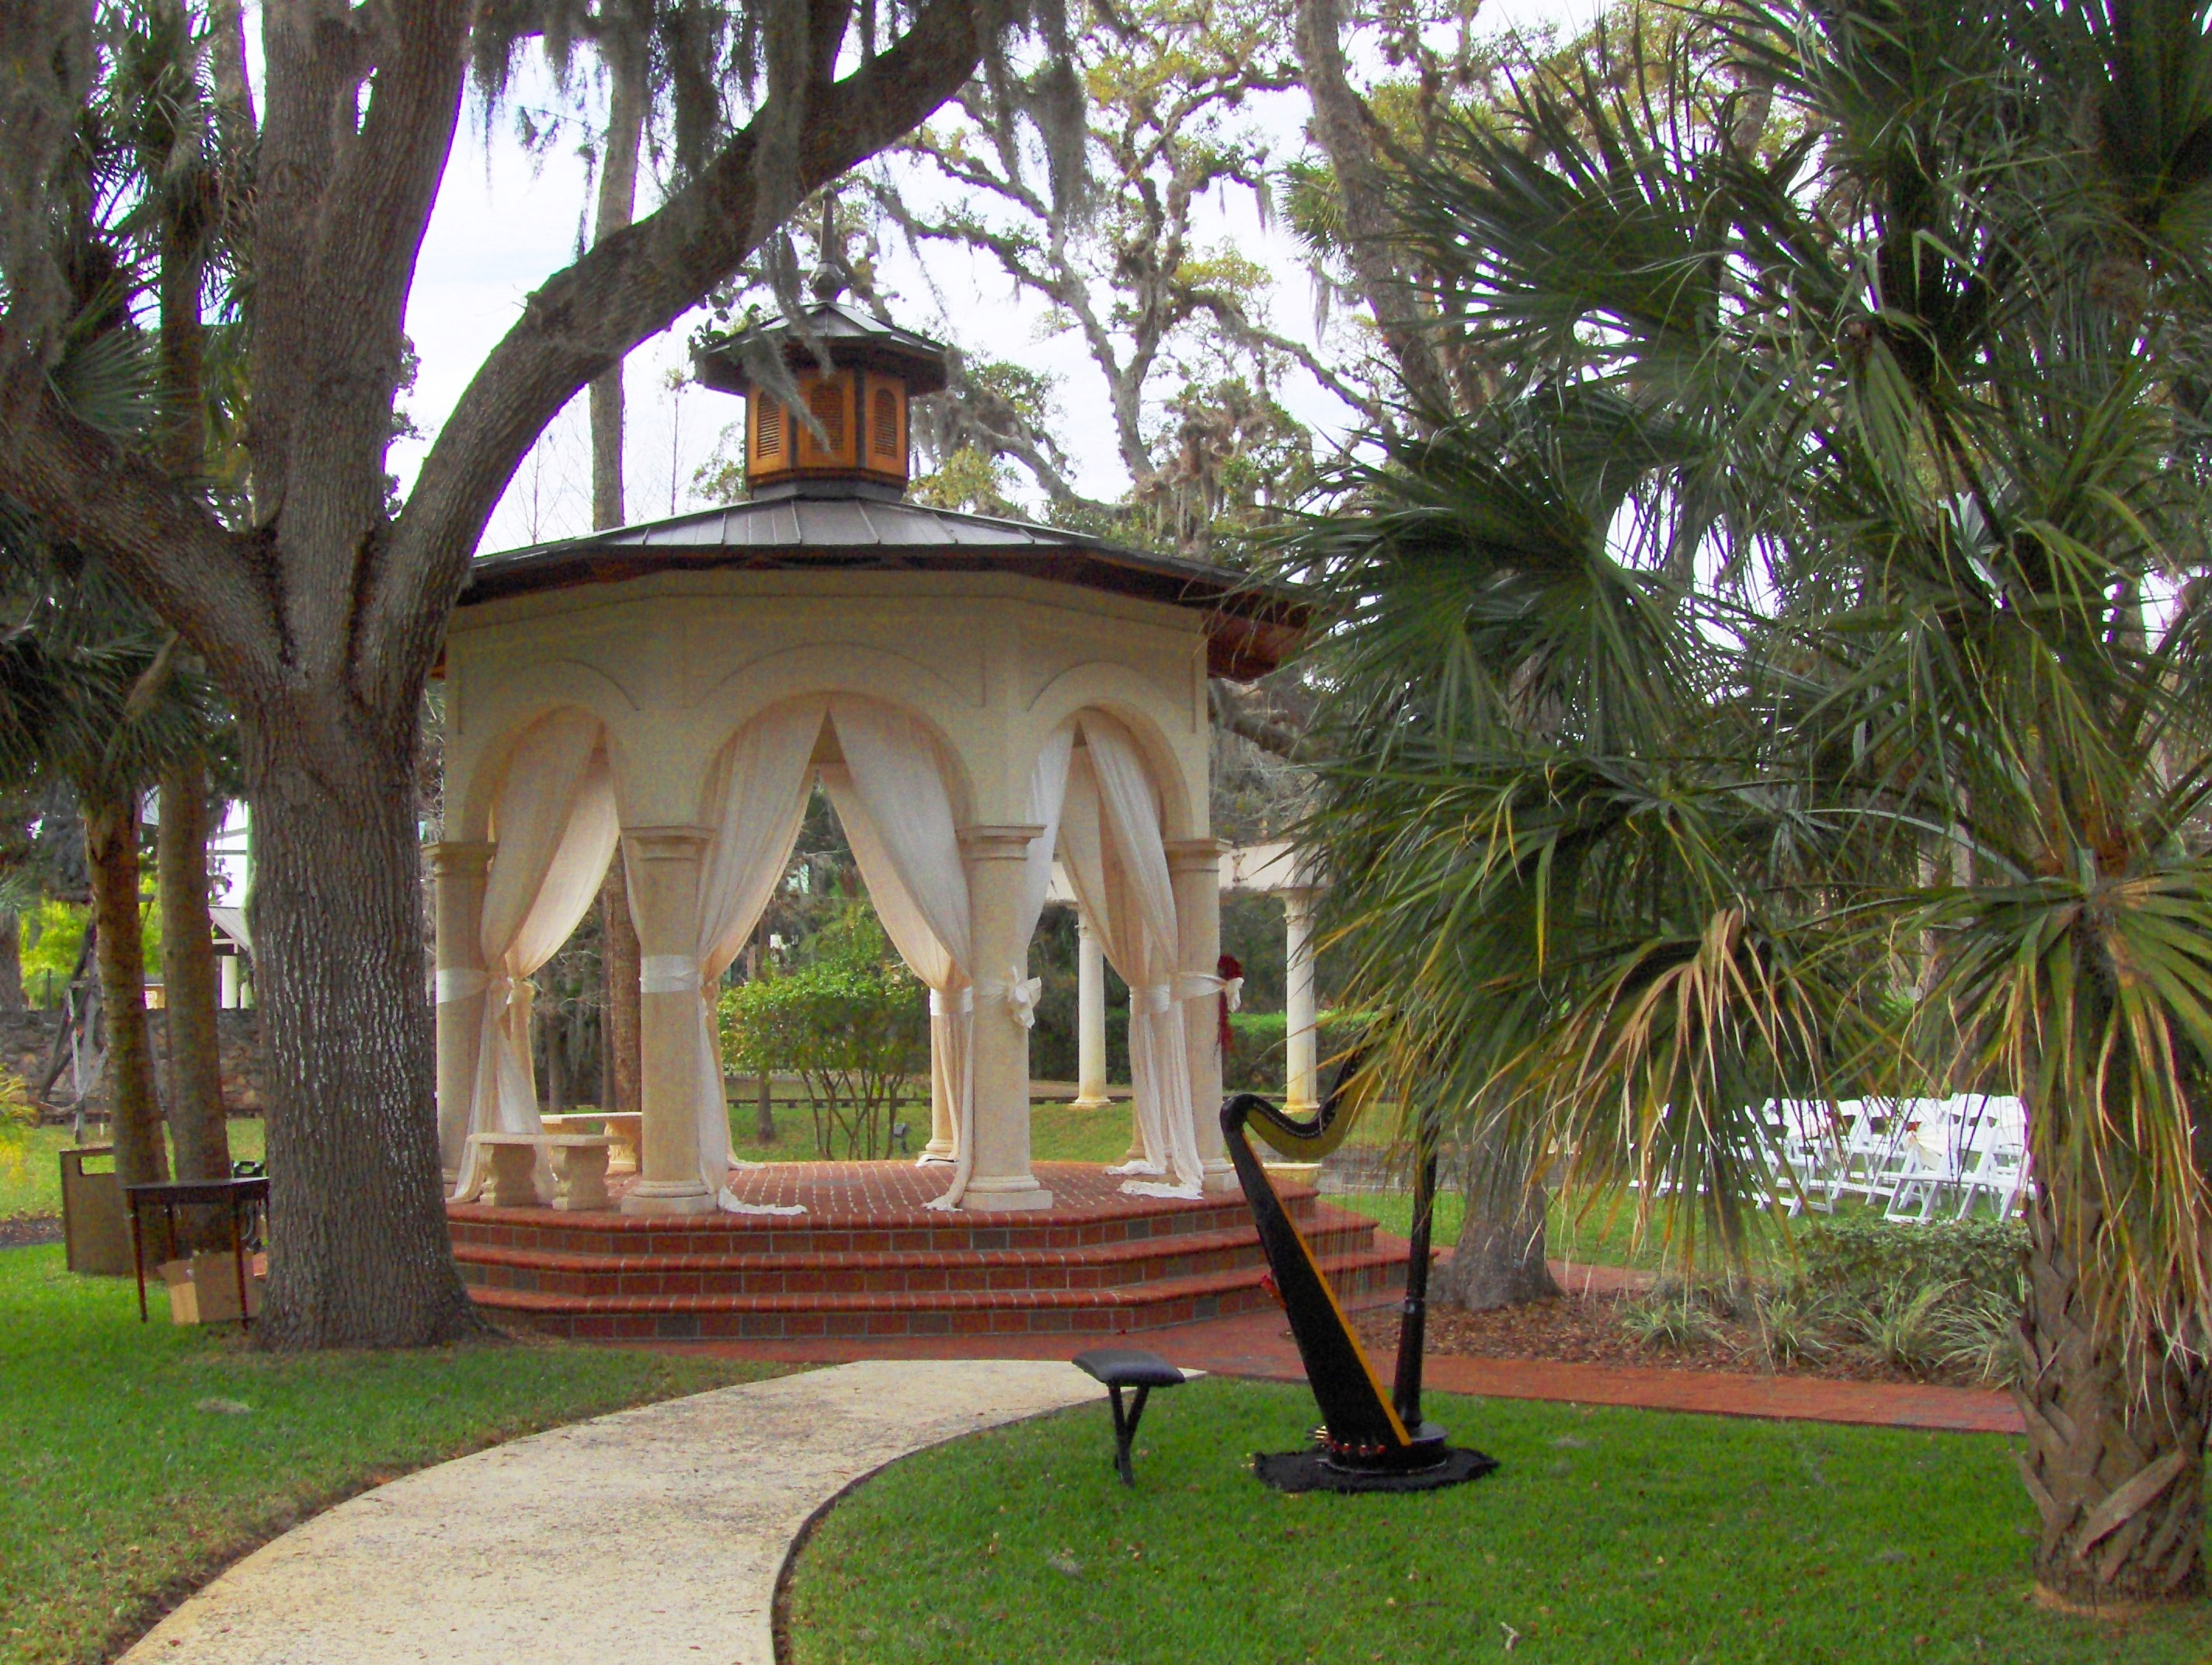 Photo Of Tavern Chapel Gazebo With Harp